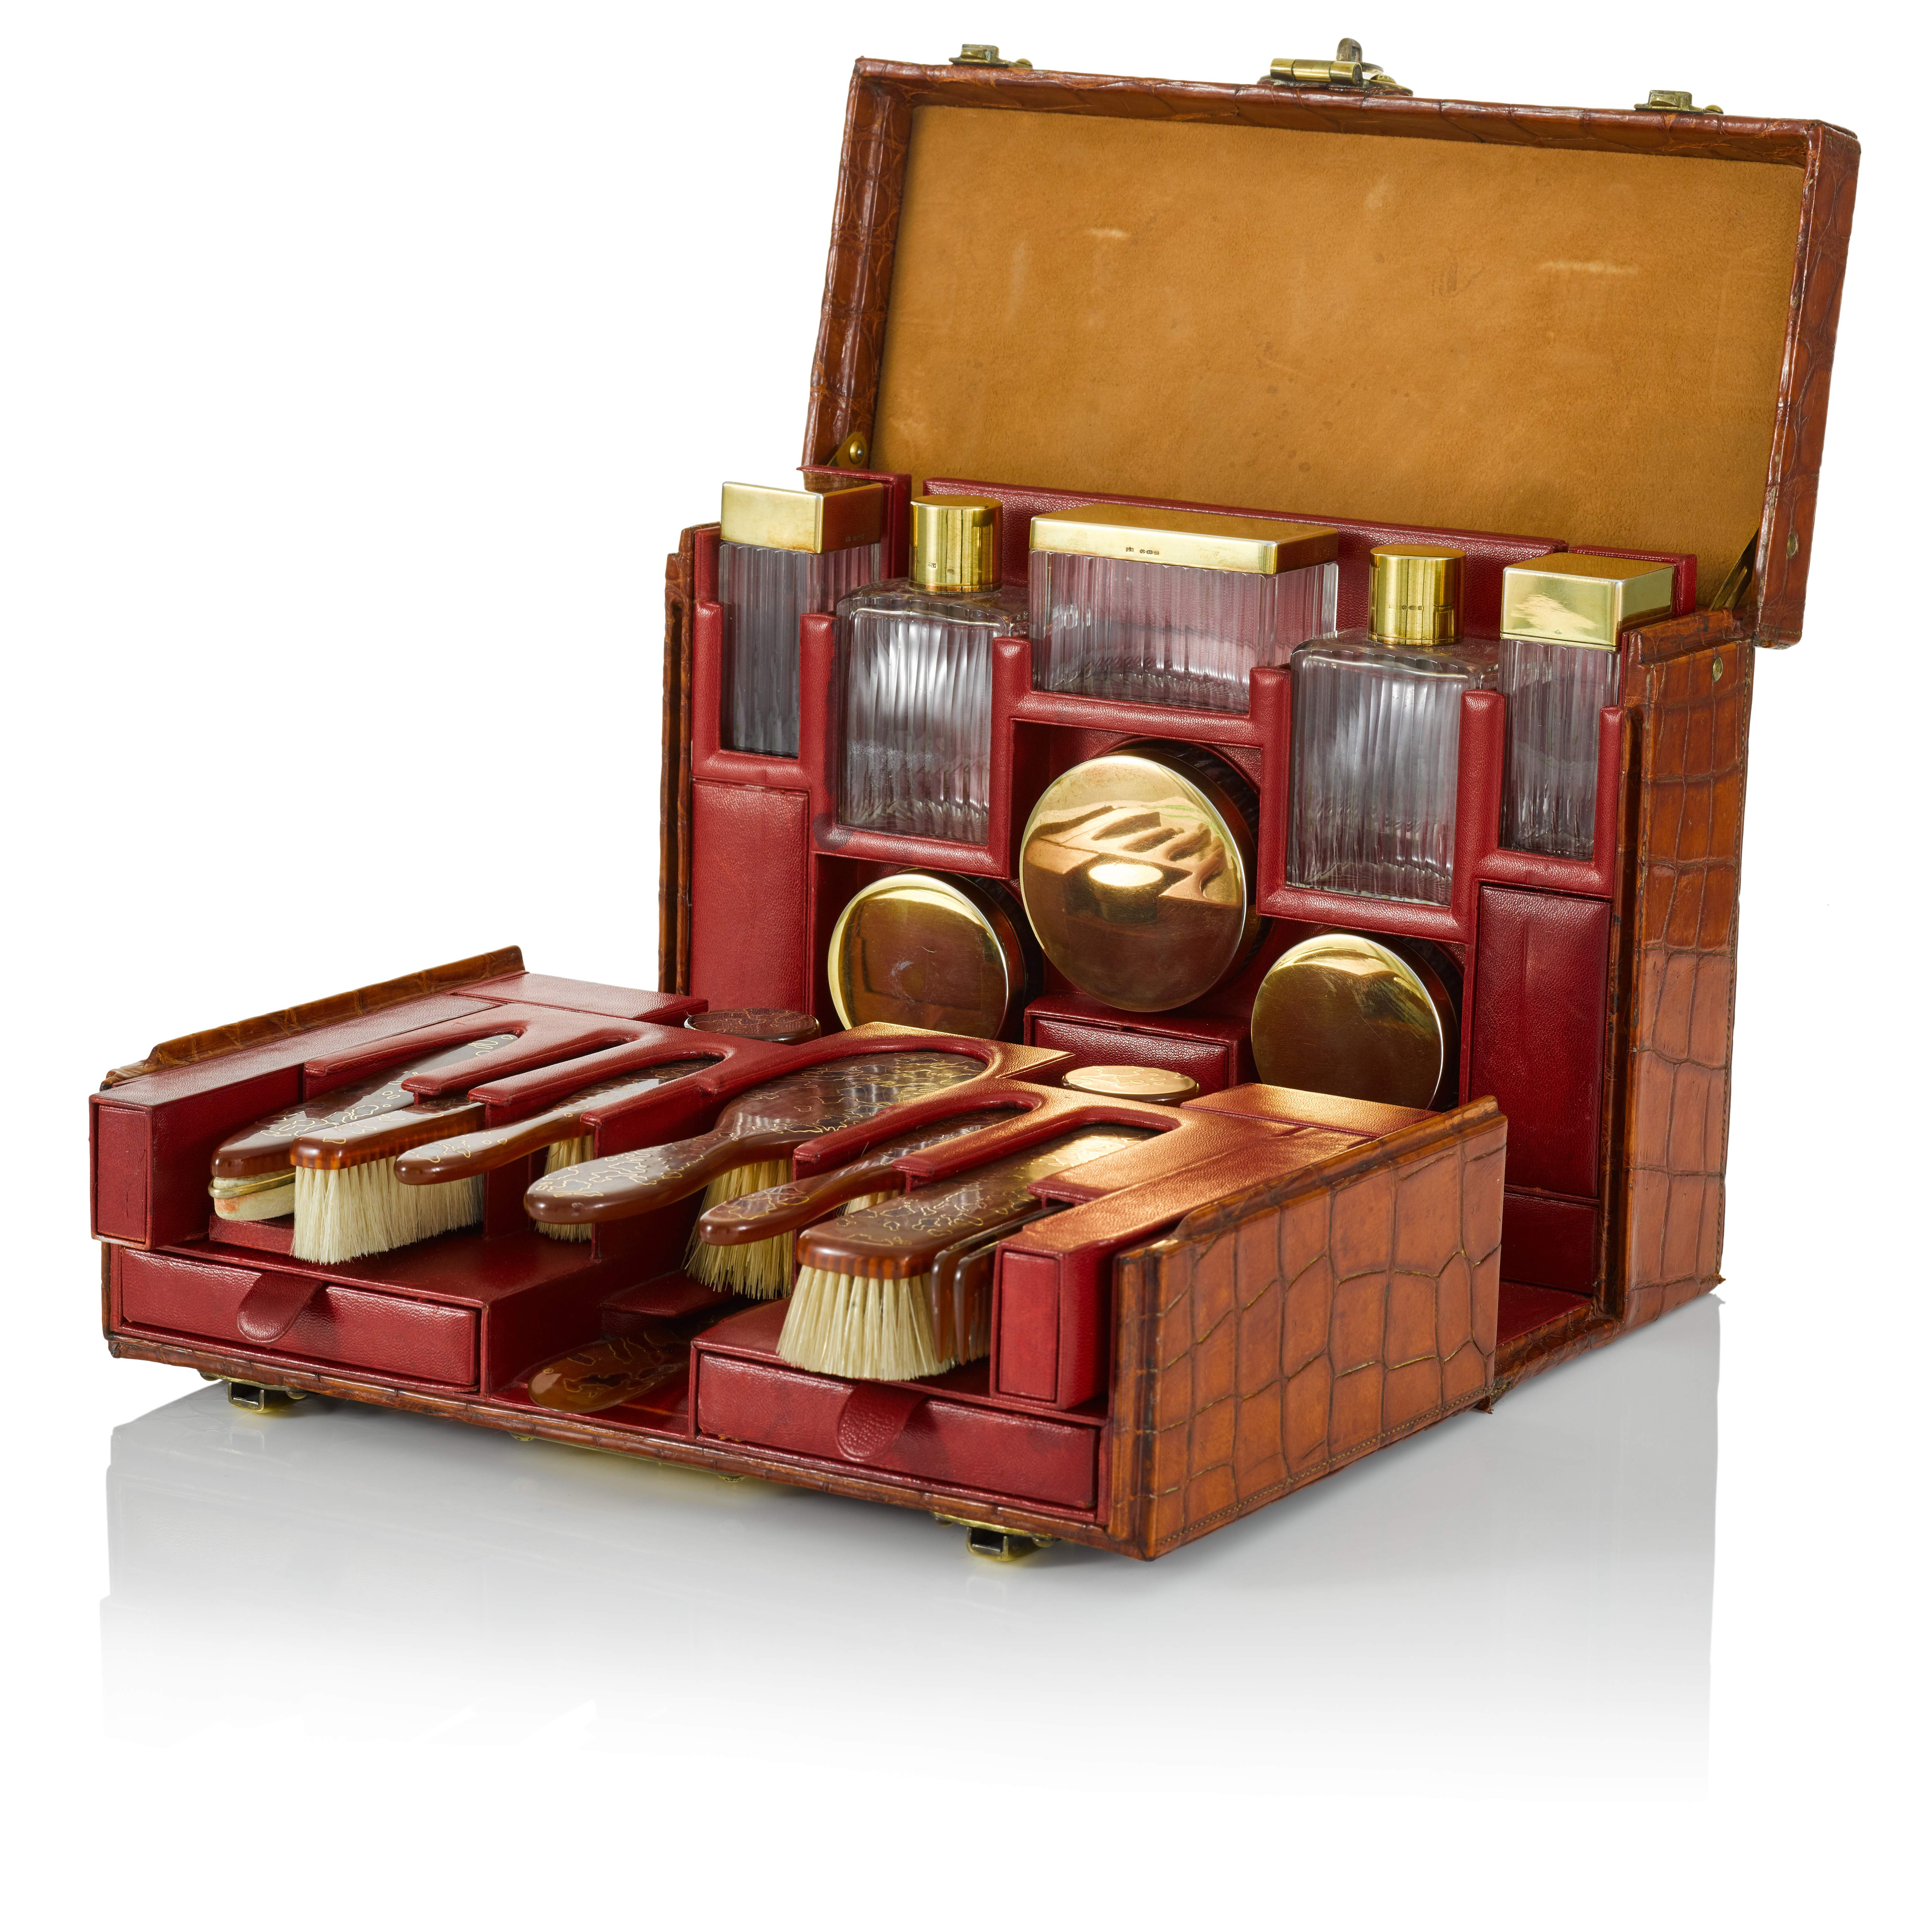 View full screen - View 1 of Lot 98. Art Deco Torino Crocodile Skin Gentleman's Dressing Case, Complete with all of the Original Fittings commissioned in 1934..